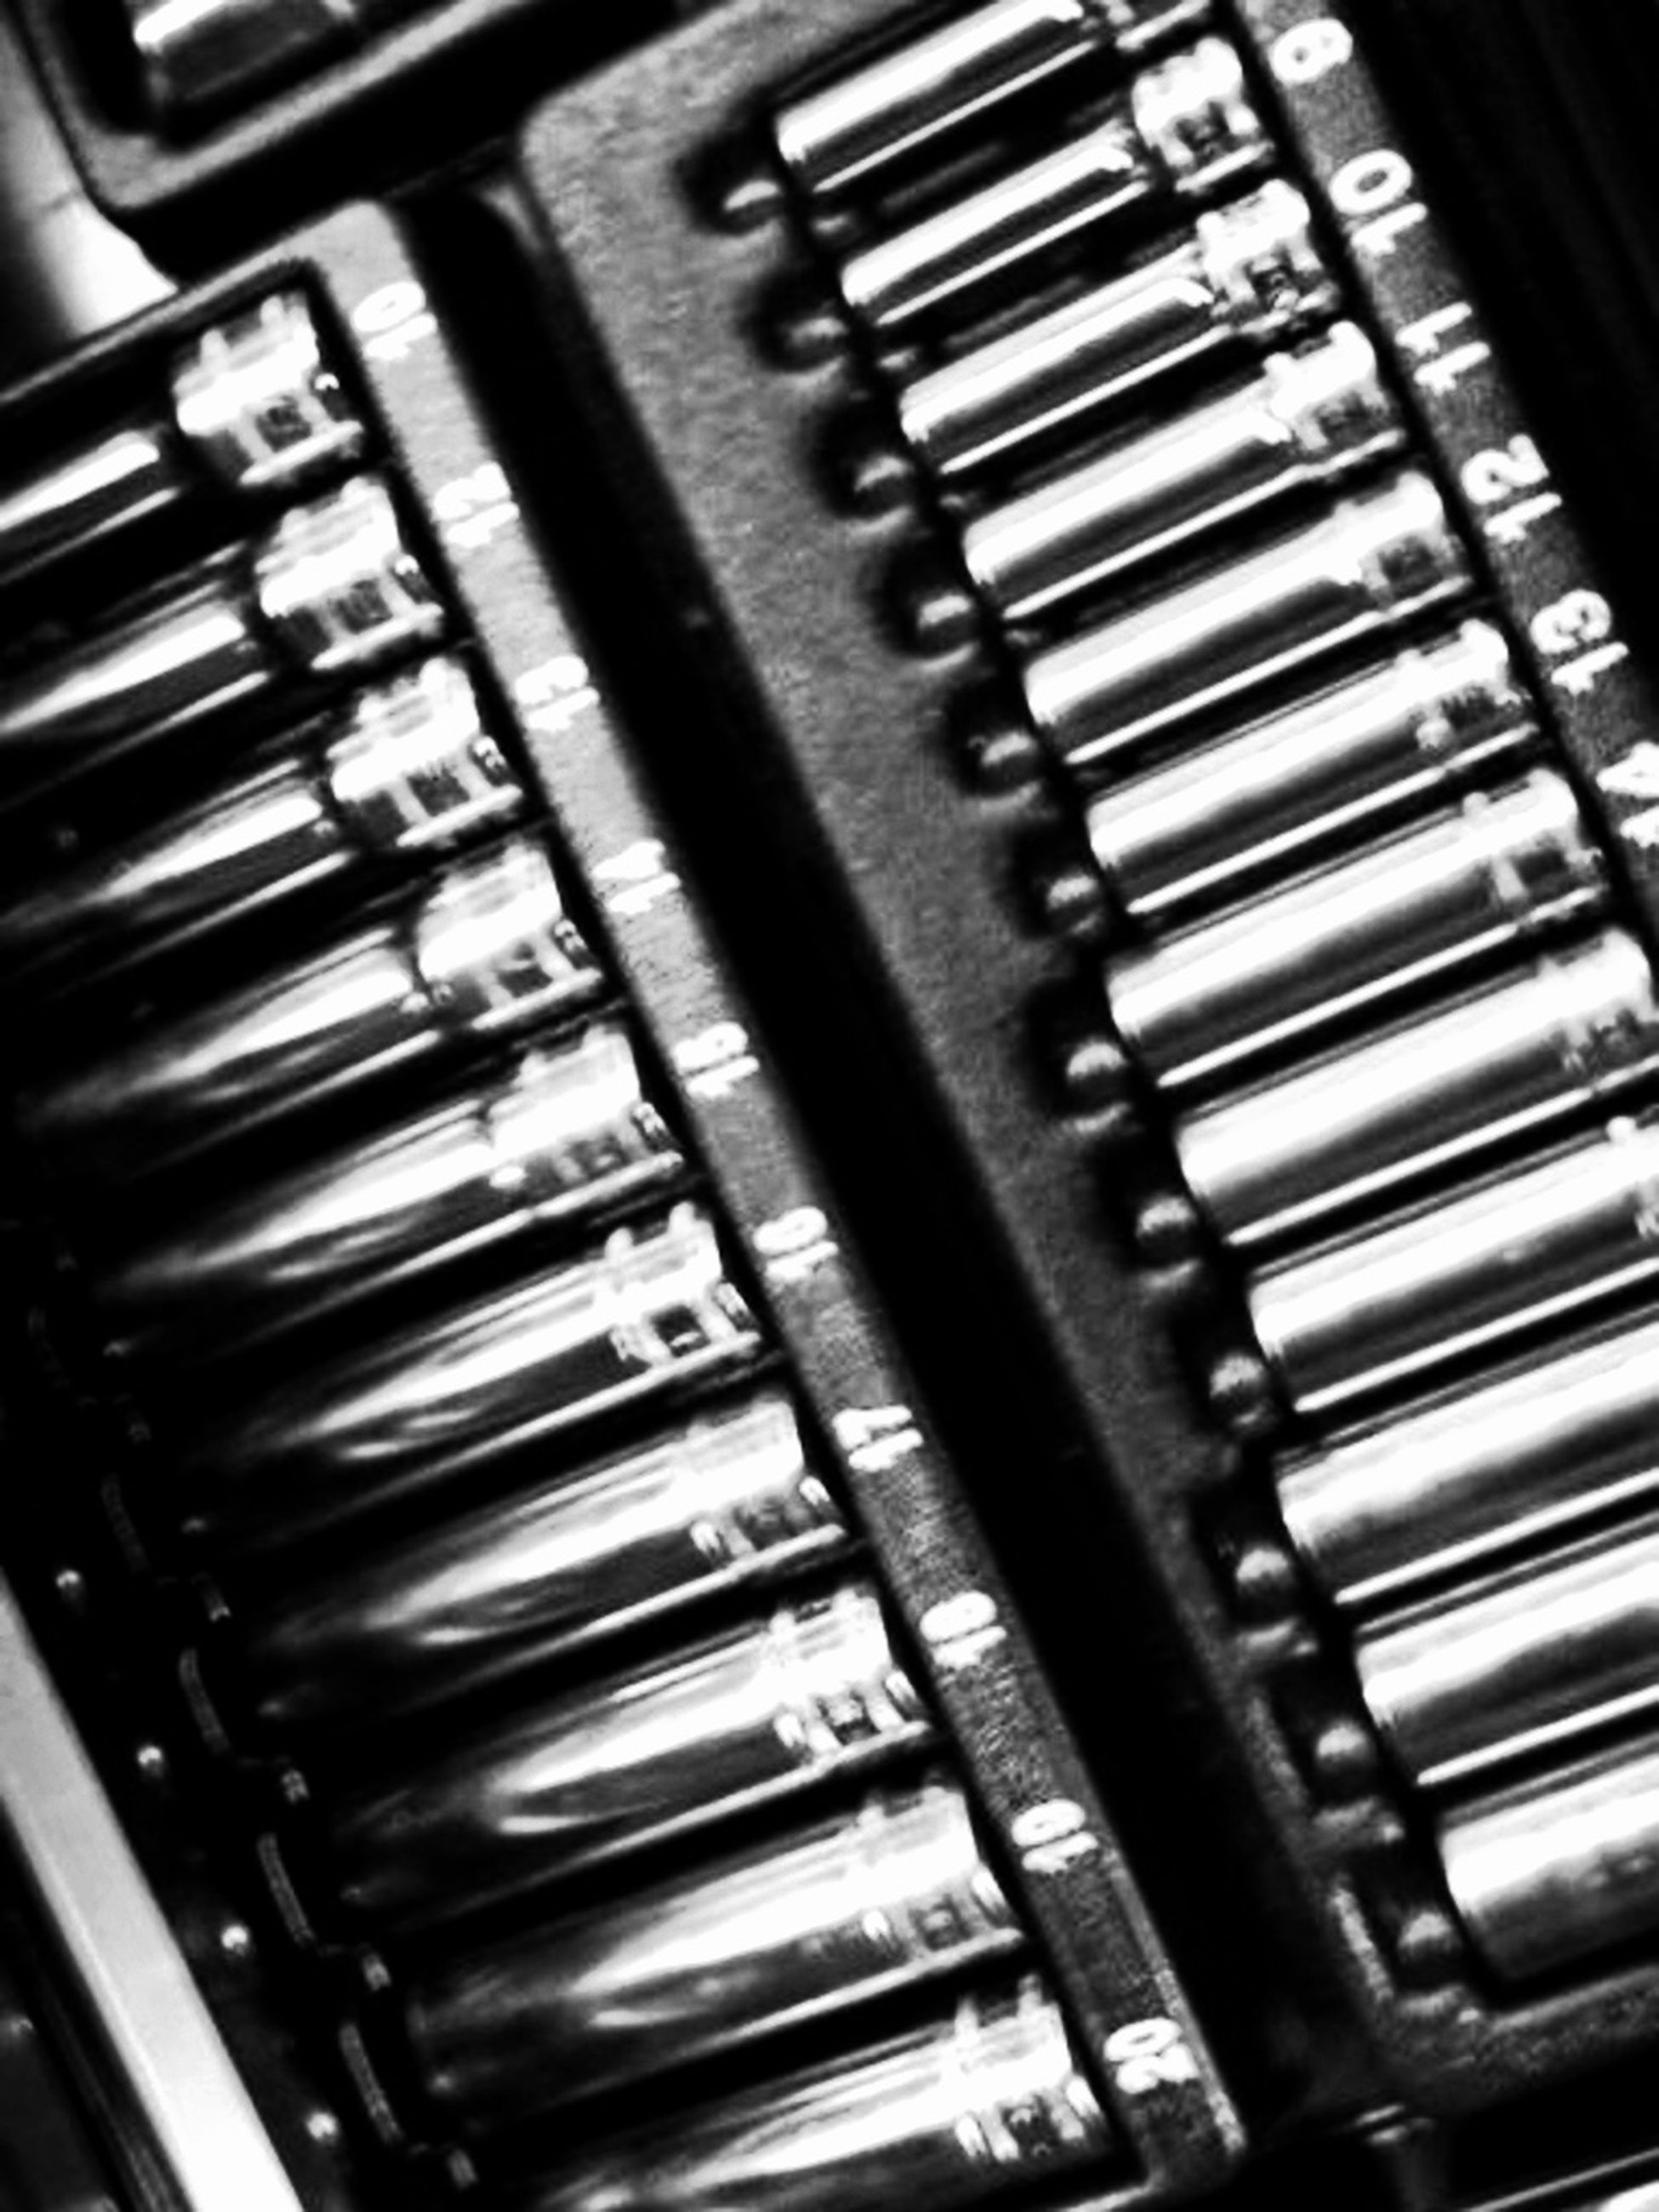 indoors, close-up, technology, in a row, full frame, backgrounds, repetition, metal, no people, high angle view, pattern, still life, order, large group of objects, music, piano key, arts culture and entertainment, metallic, detail, selective focus